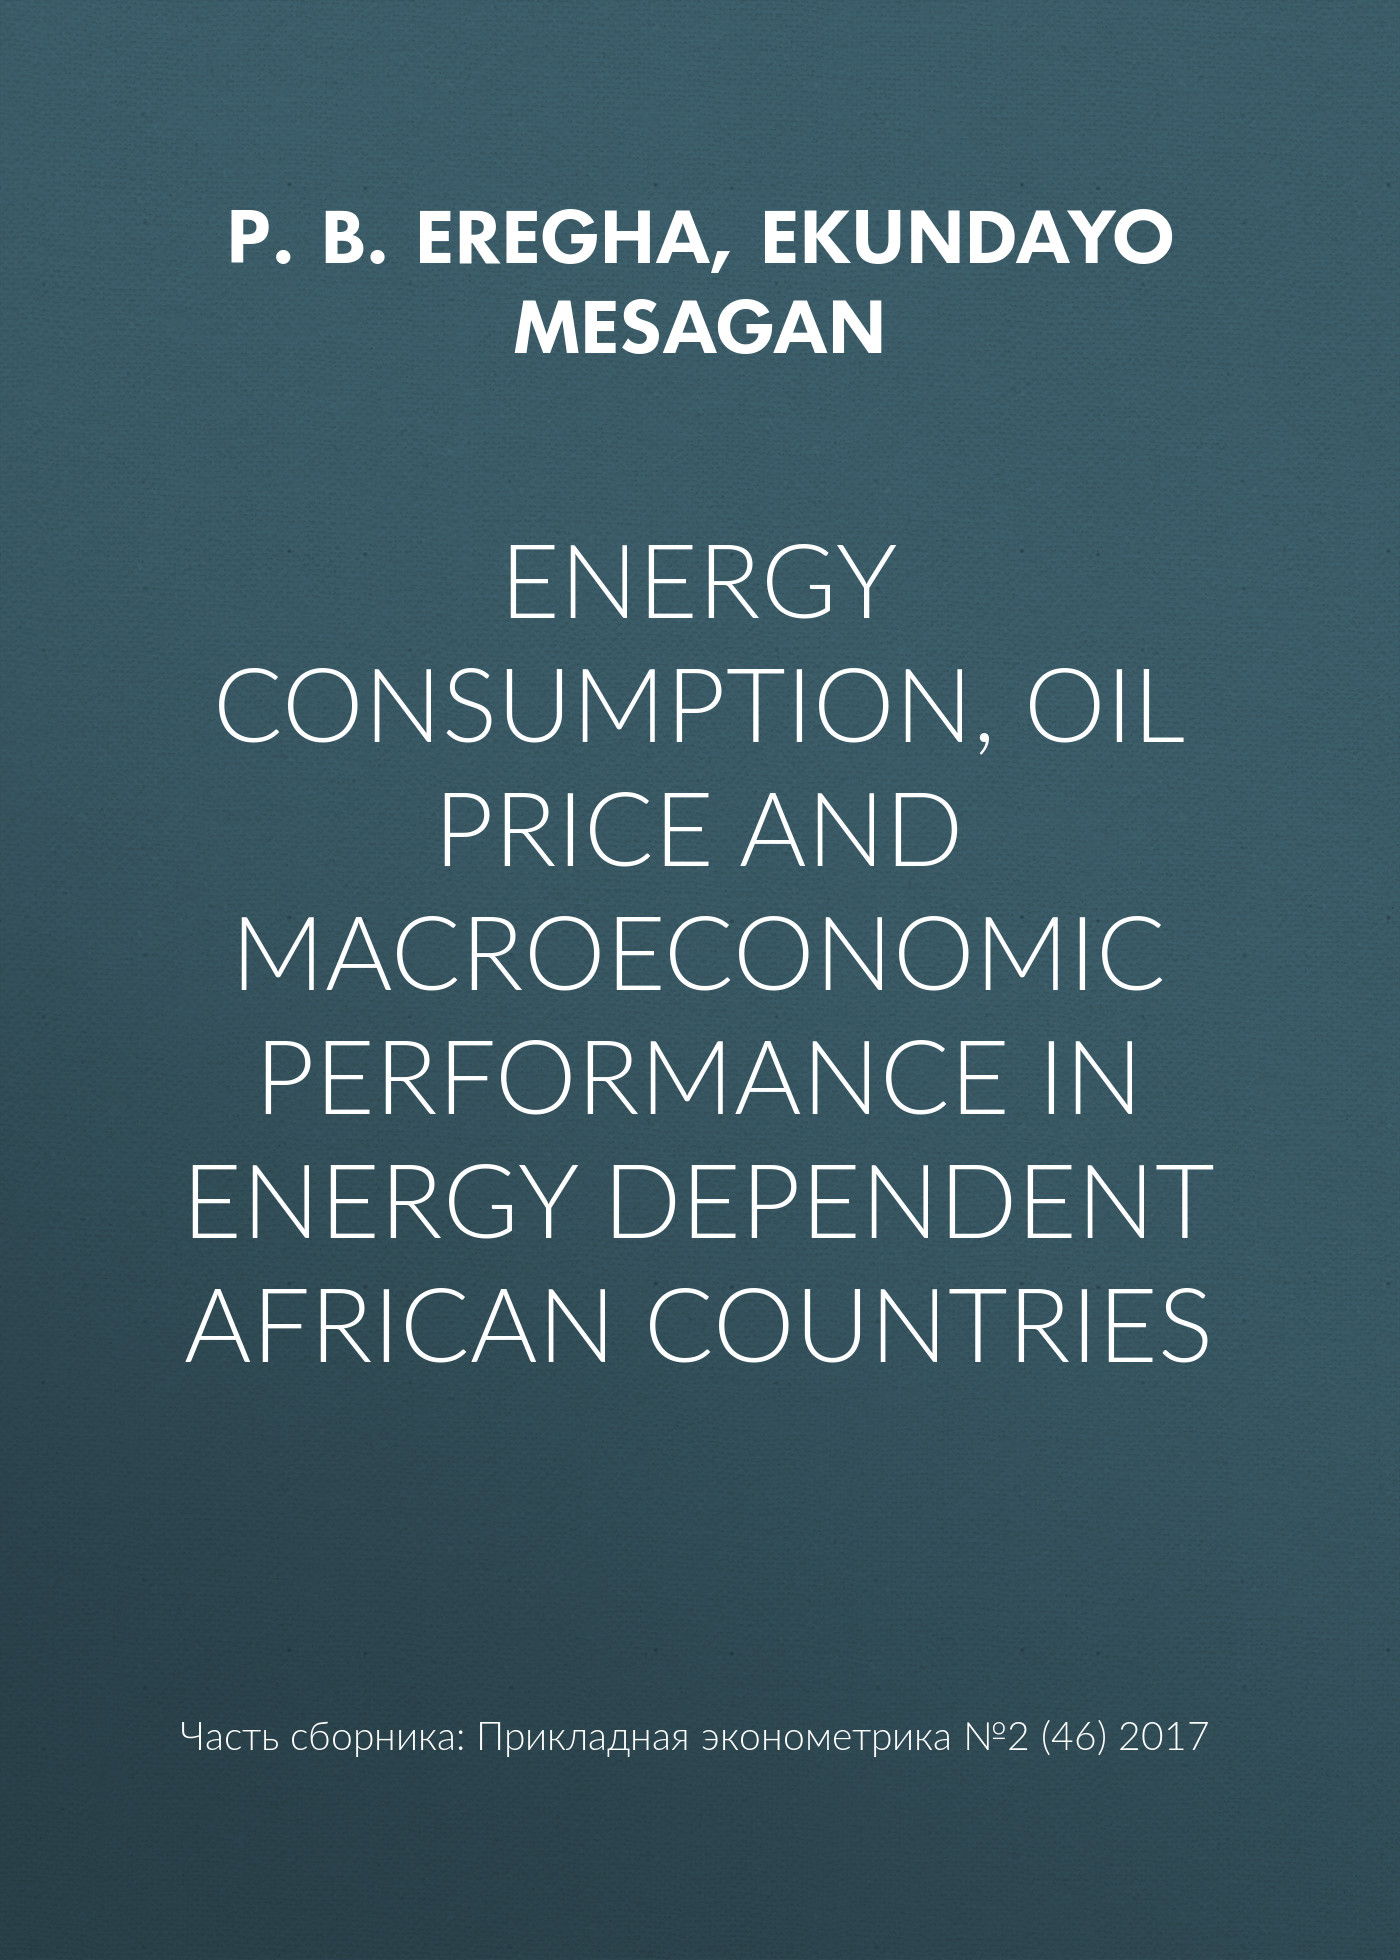 P. B. Eregha Energy consumption, oil price and macroeconomic performance in energy dependent African countries